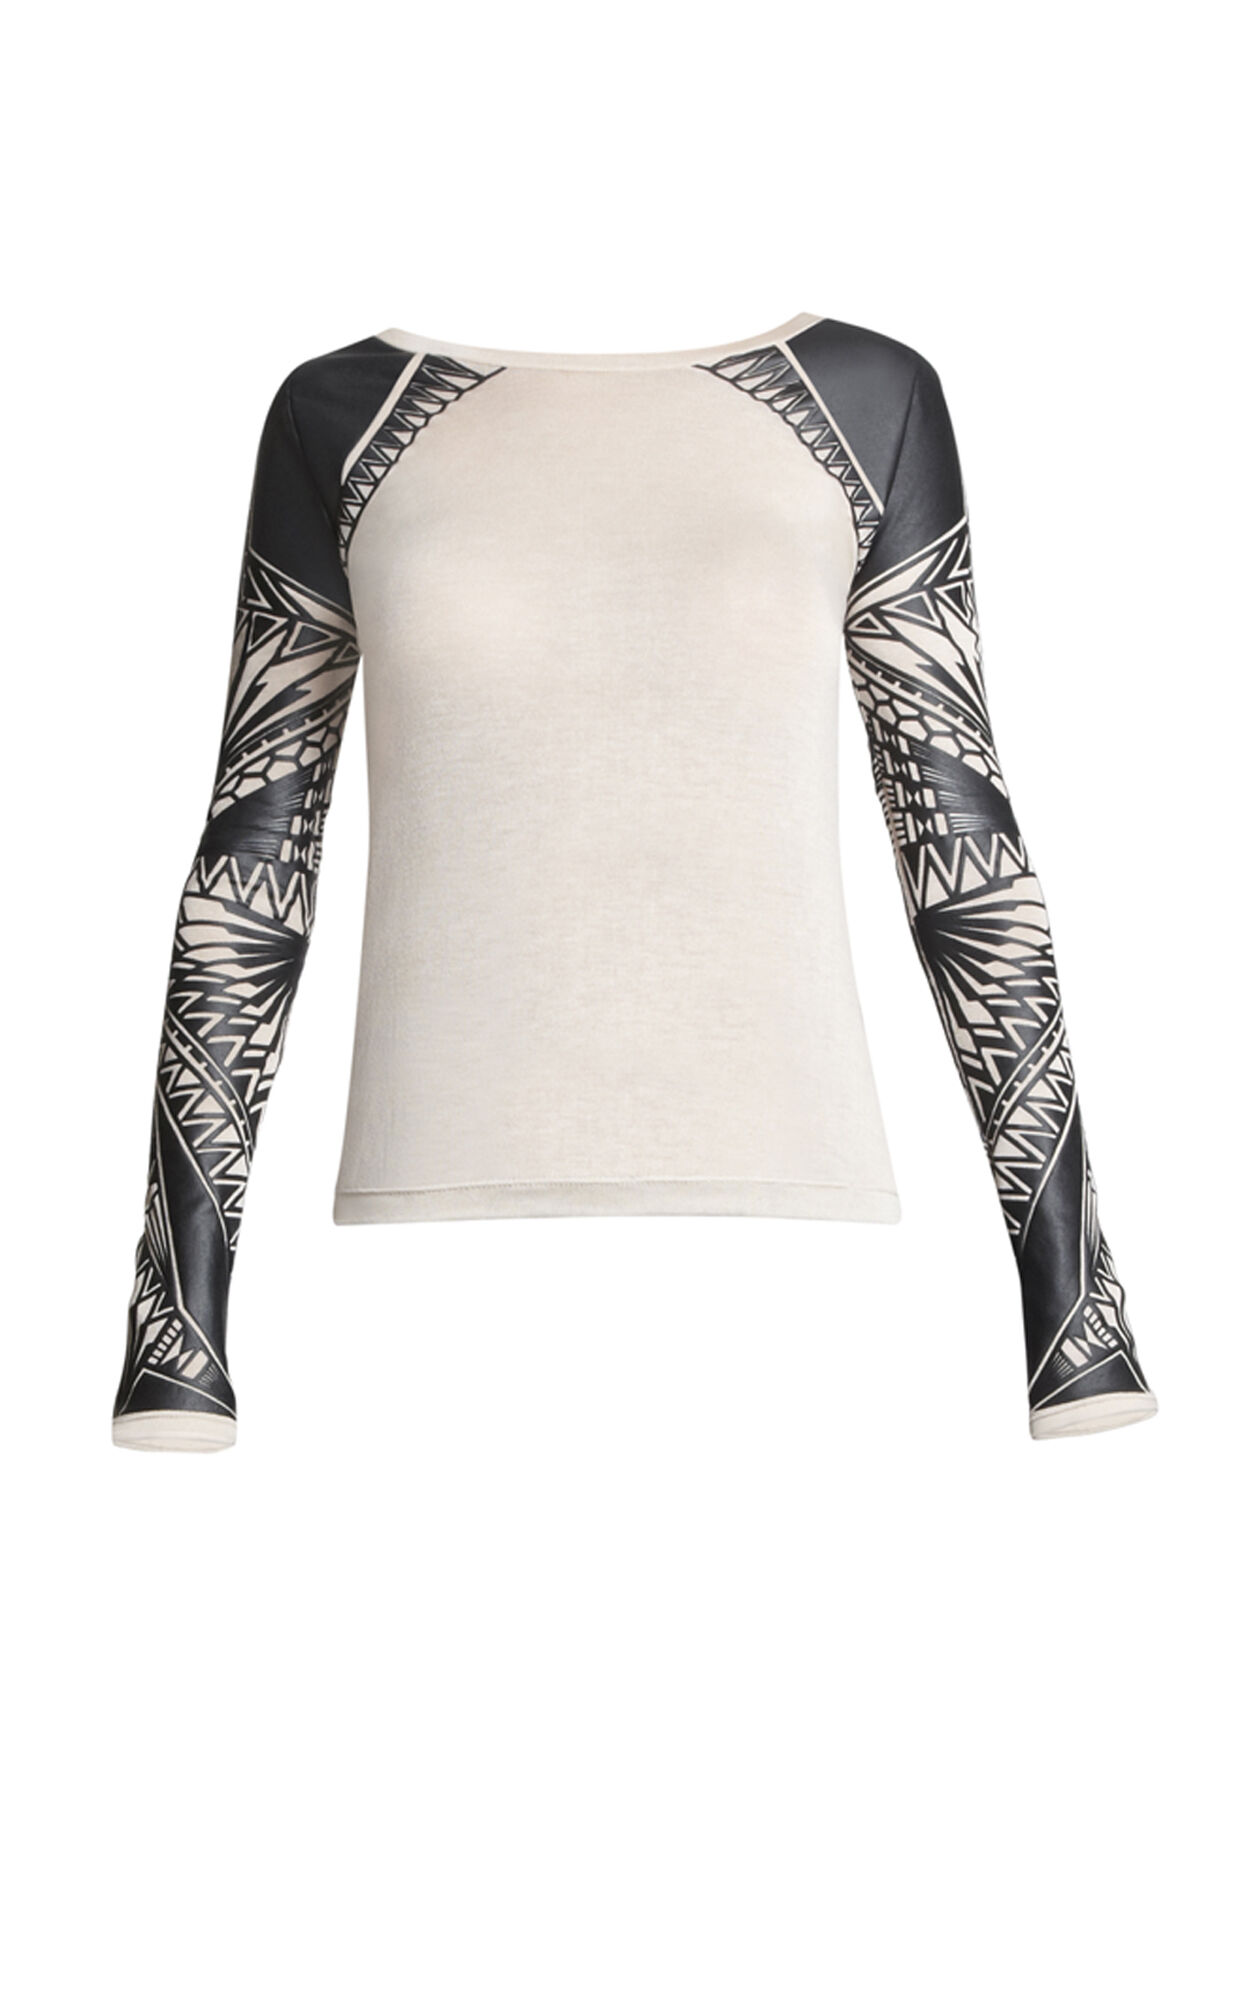 Yusa Tattoo-Print Top